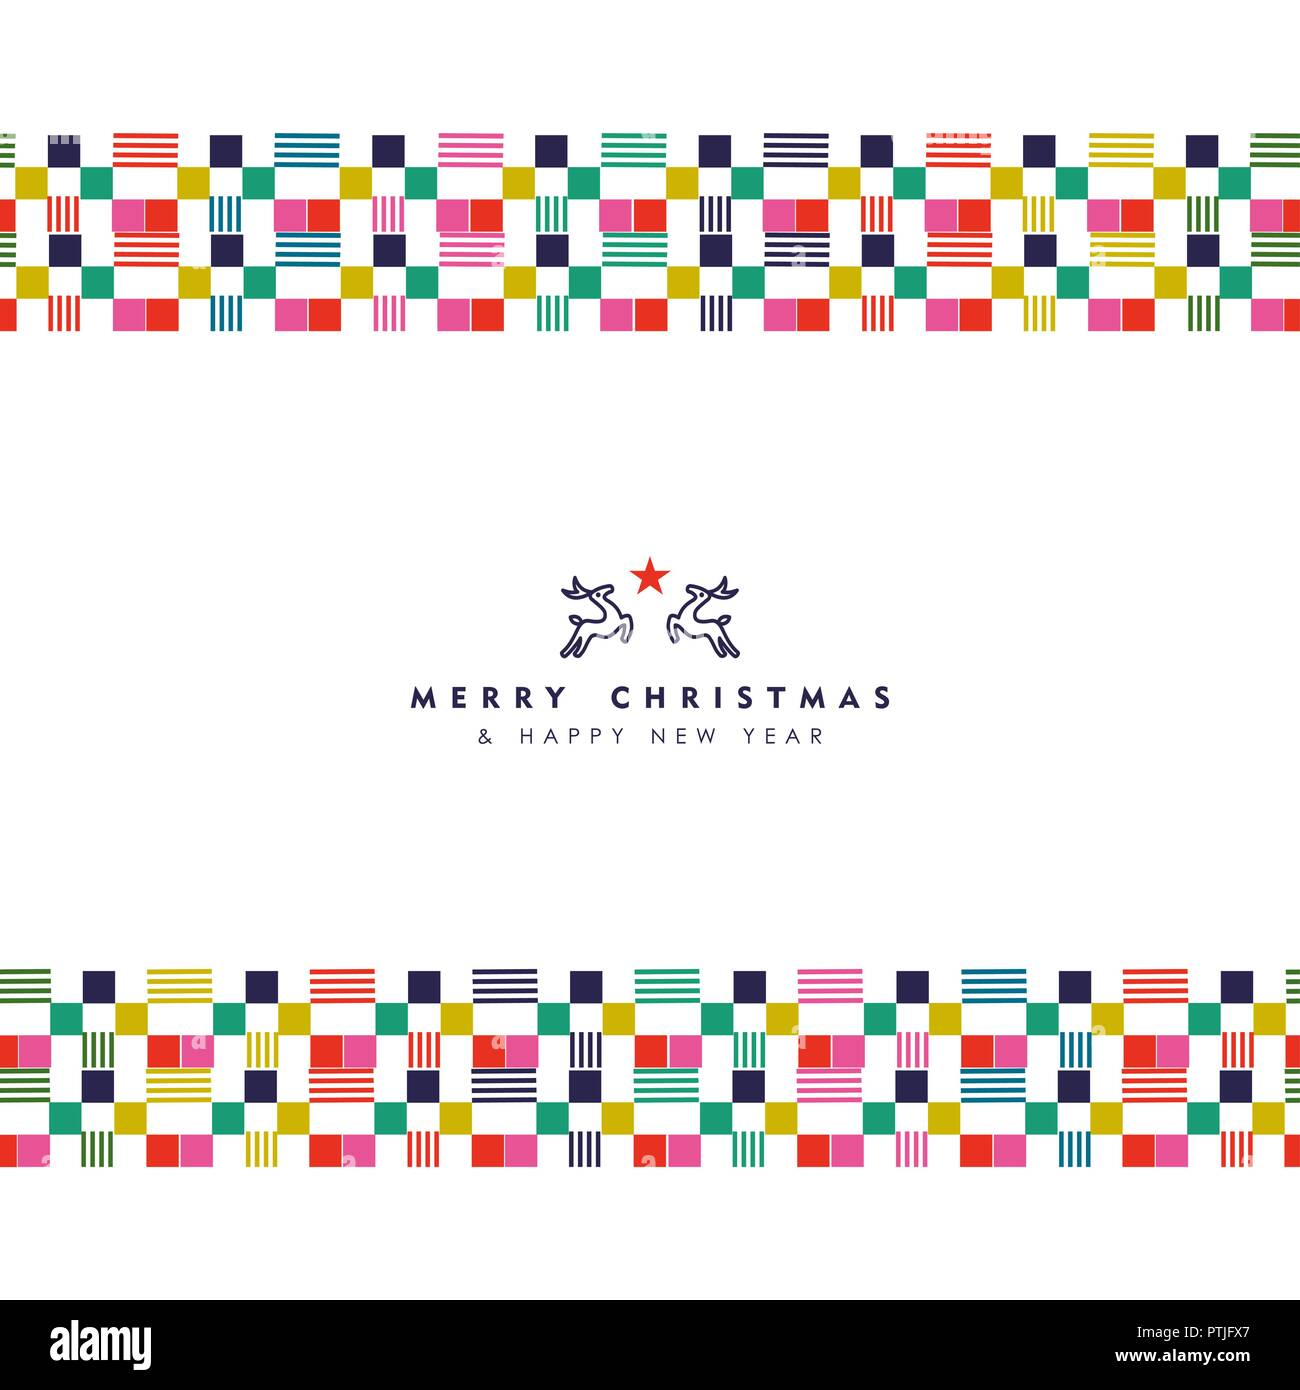 merry christmas and happy new year holiday greeting card illustration abstract style decoration with border colorful geometric shapes in festive colo